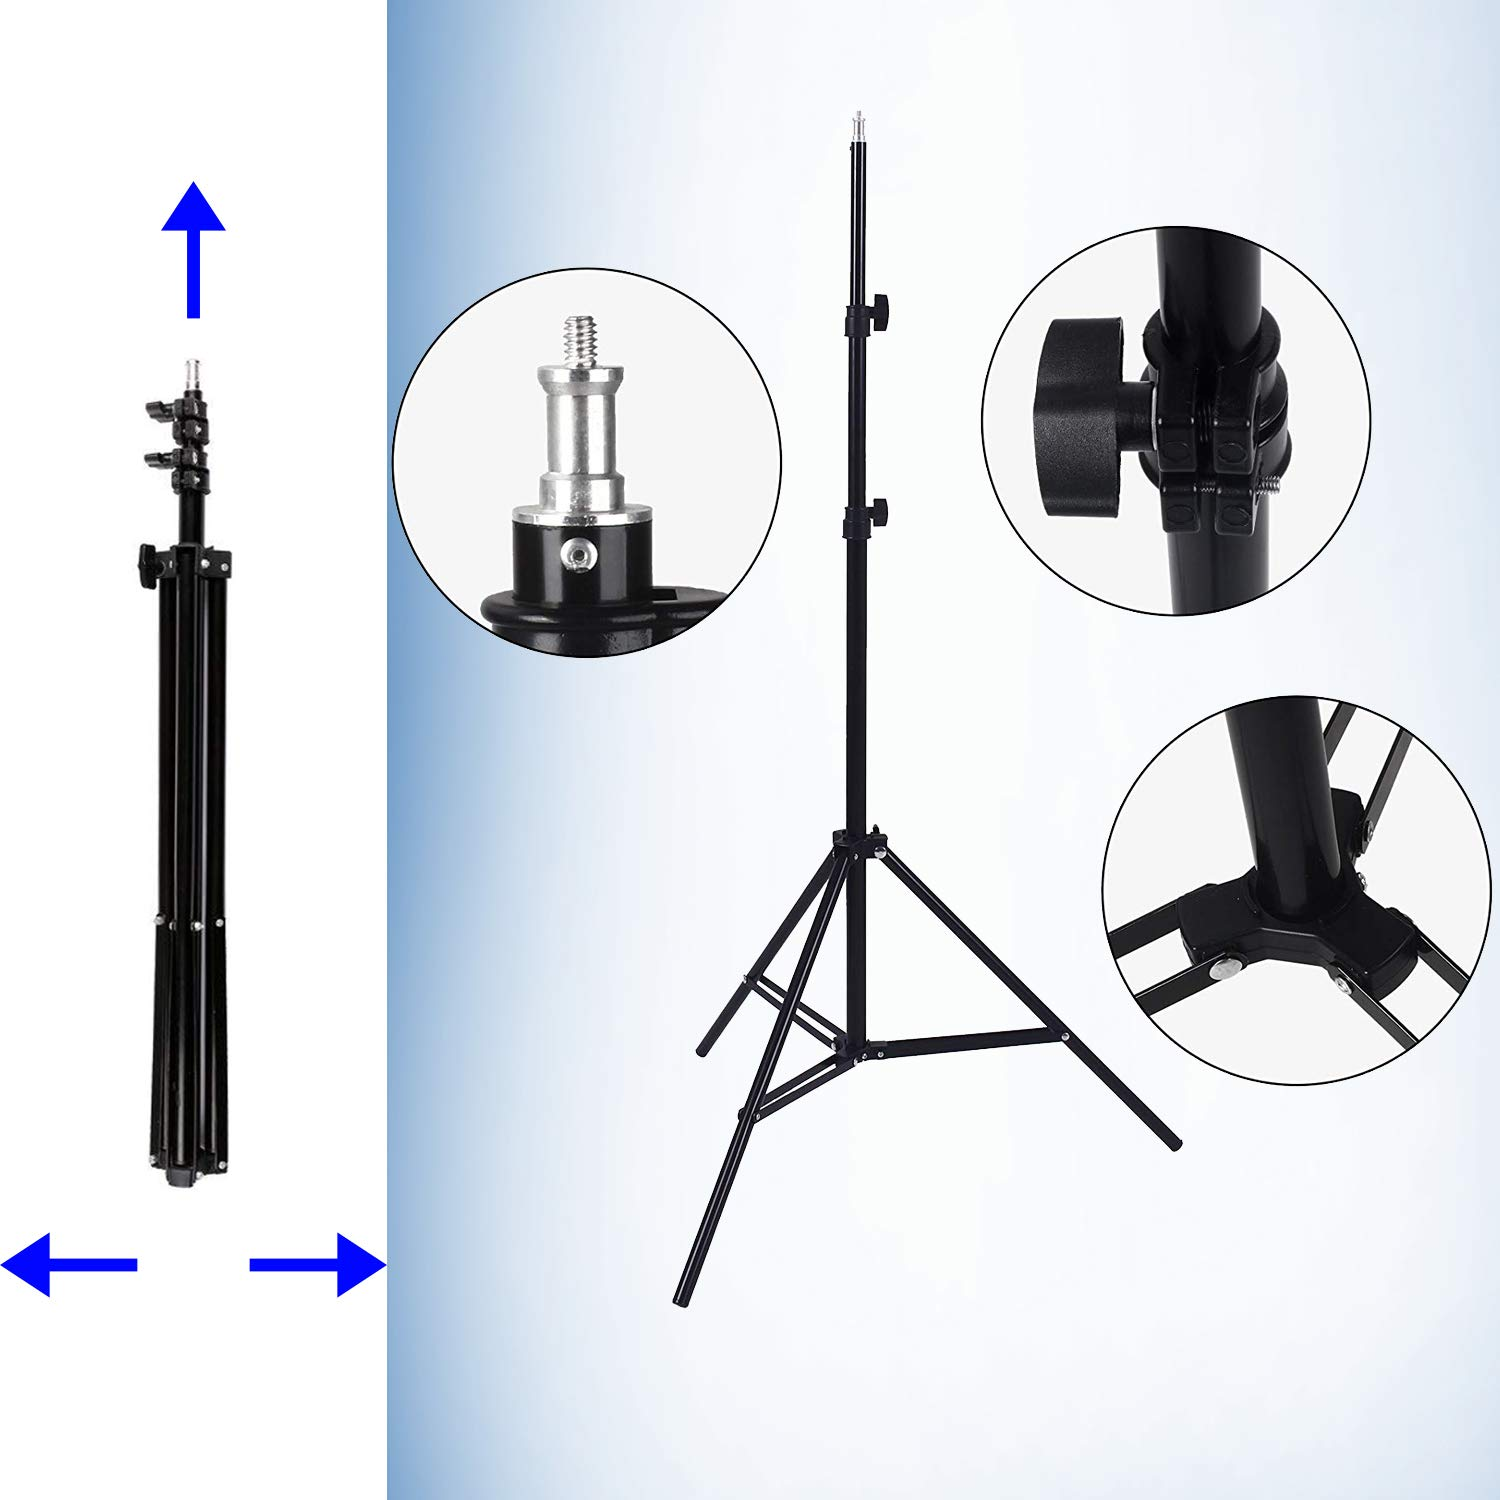 Upland 33-Inch 2 Umbrella Lights with Backdrop System, for Photo Photography, Video Studio Lighting, 1 Backdrop Support Stand (6.6x6.6 Feet), 3 Backdrops (5.4x 10 Feet) by Upland (Image #3)